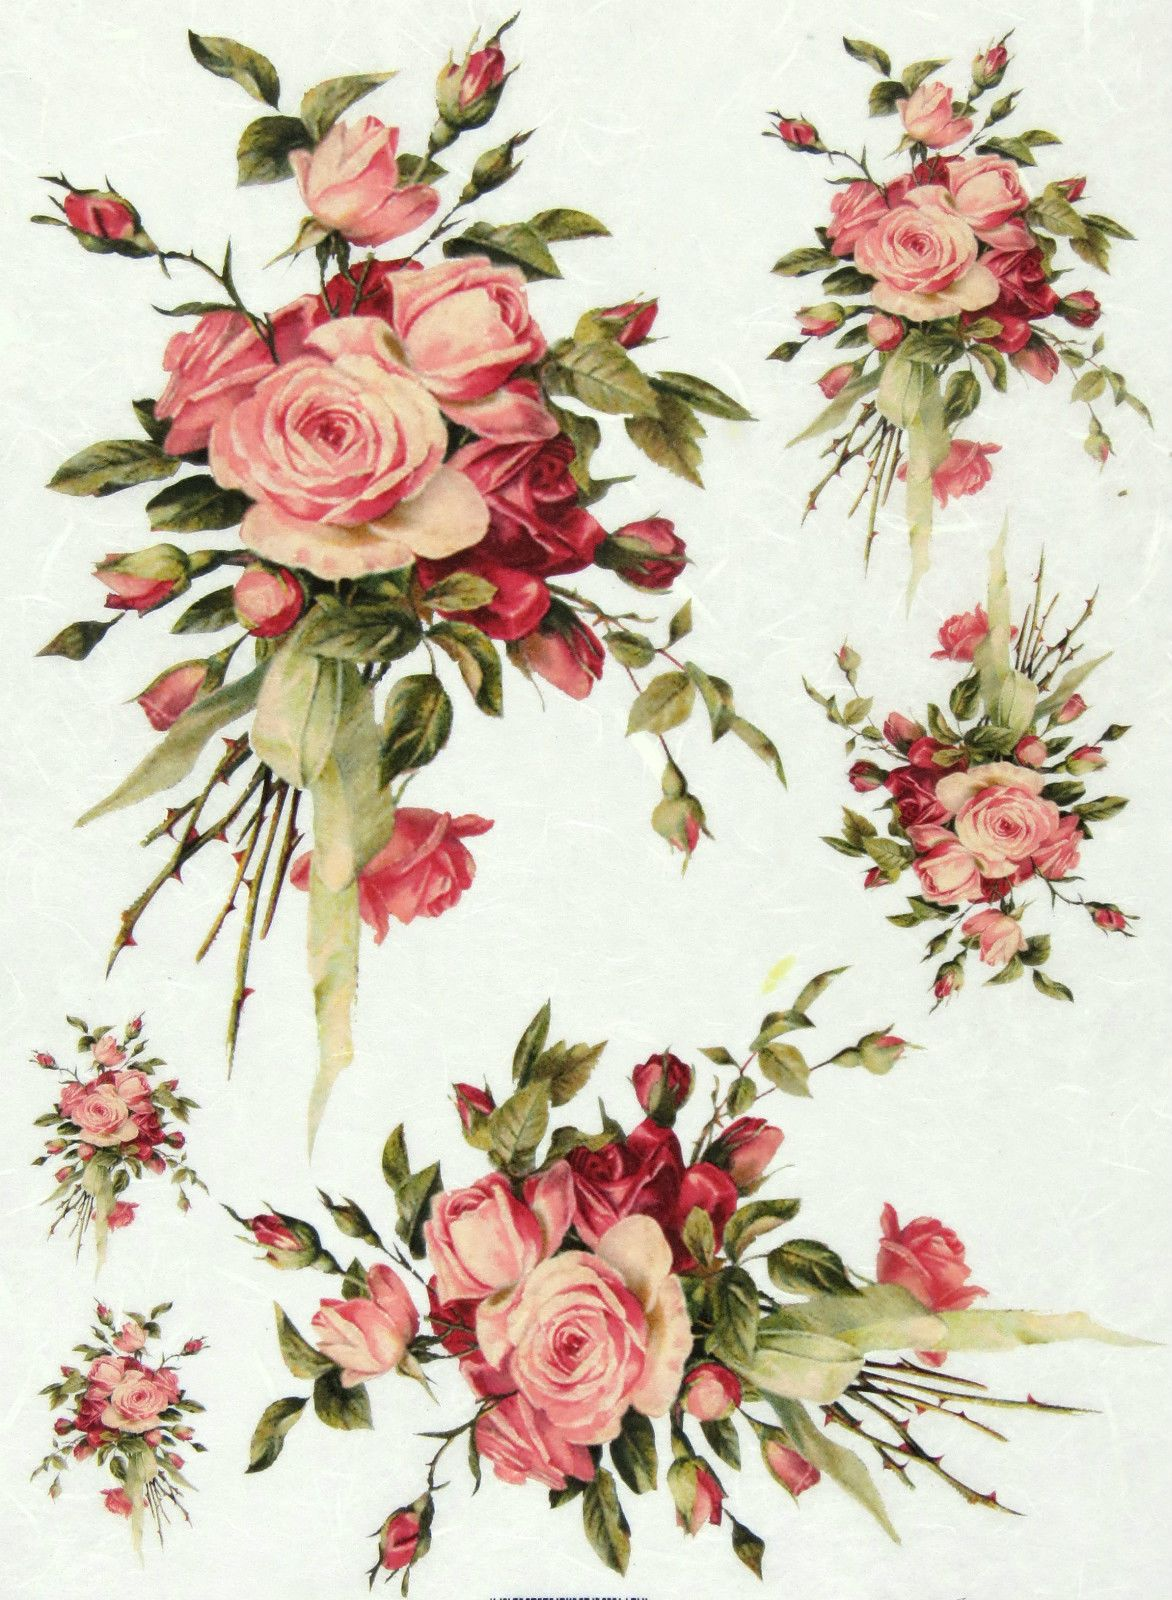 Rice paper for decoupage scrapbooking sheet vintage rose bouquet ricepaperdecoupage paperscrapbooking sheets craft paper vintage rose bouquet mightylinksfo